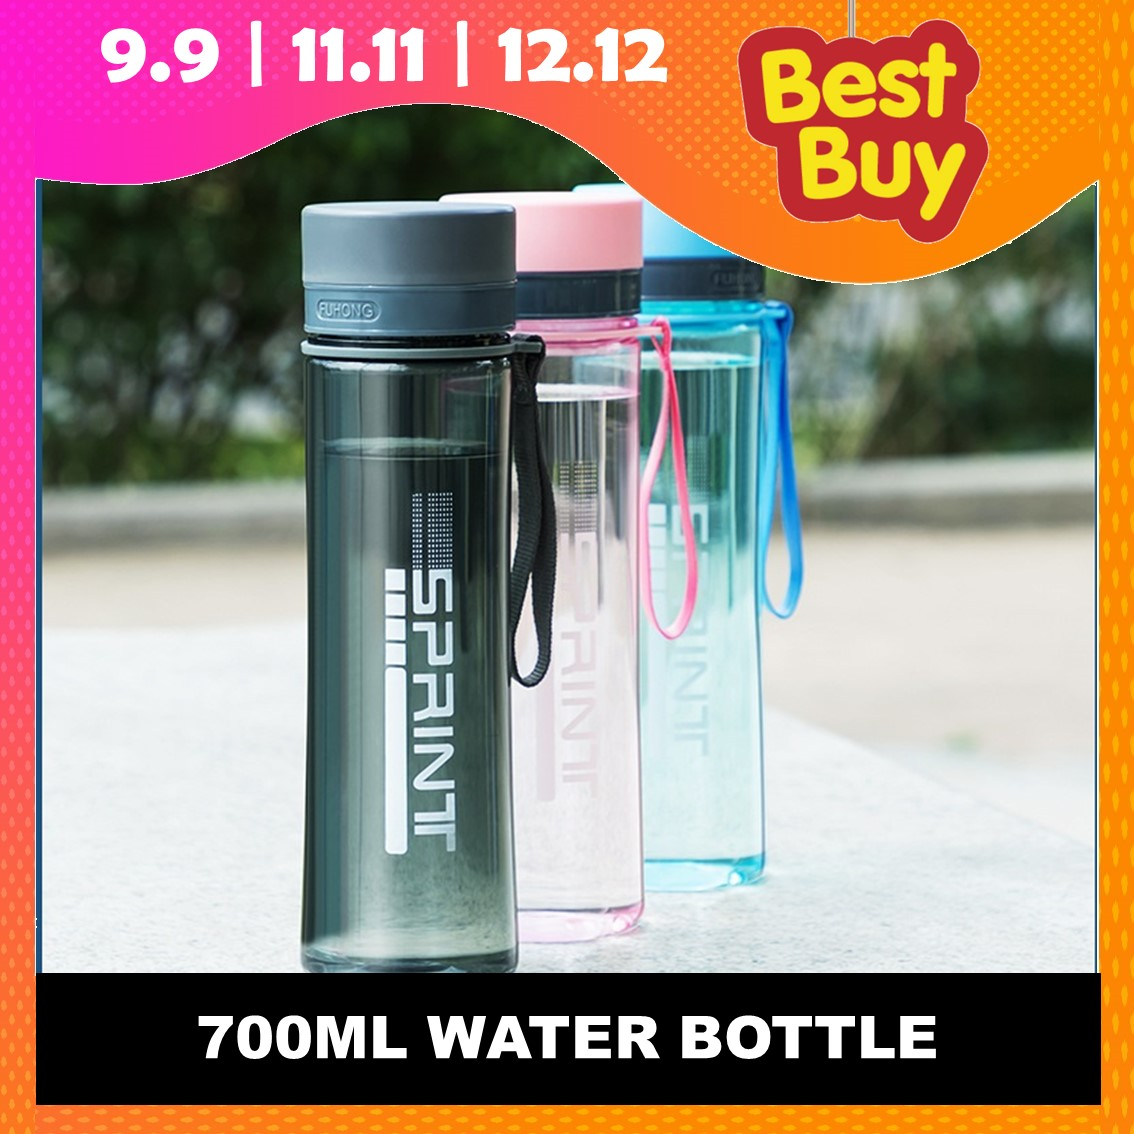 700ML Water Bottle NL Portable Size Transparent Sport Cycling Running Travel Water Bottle Botol Air